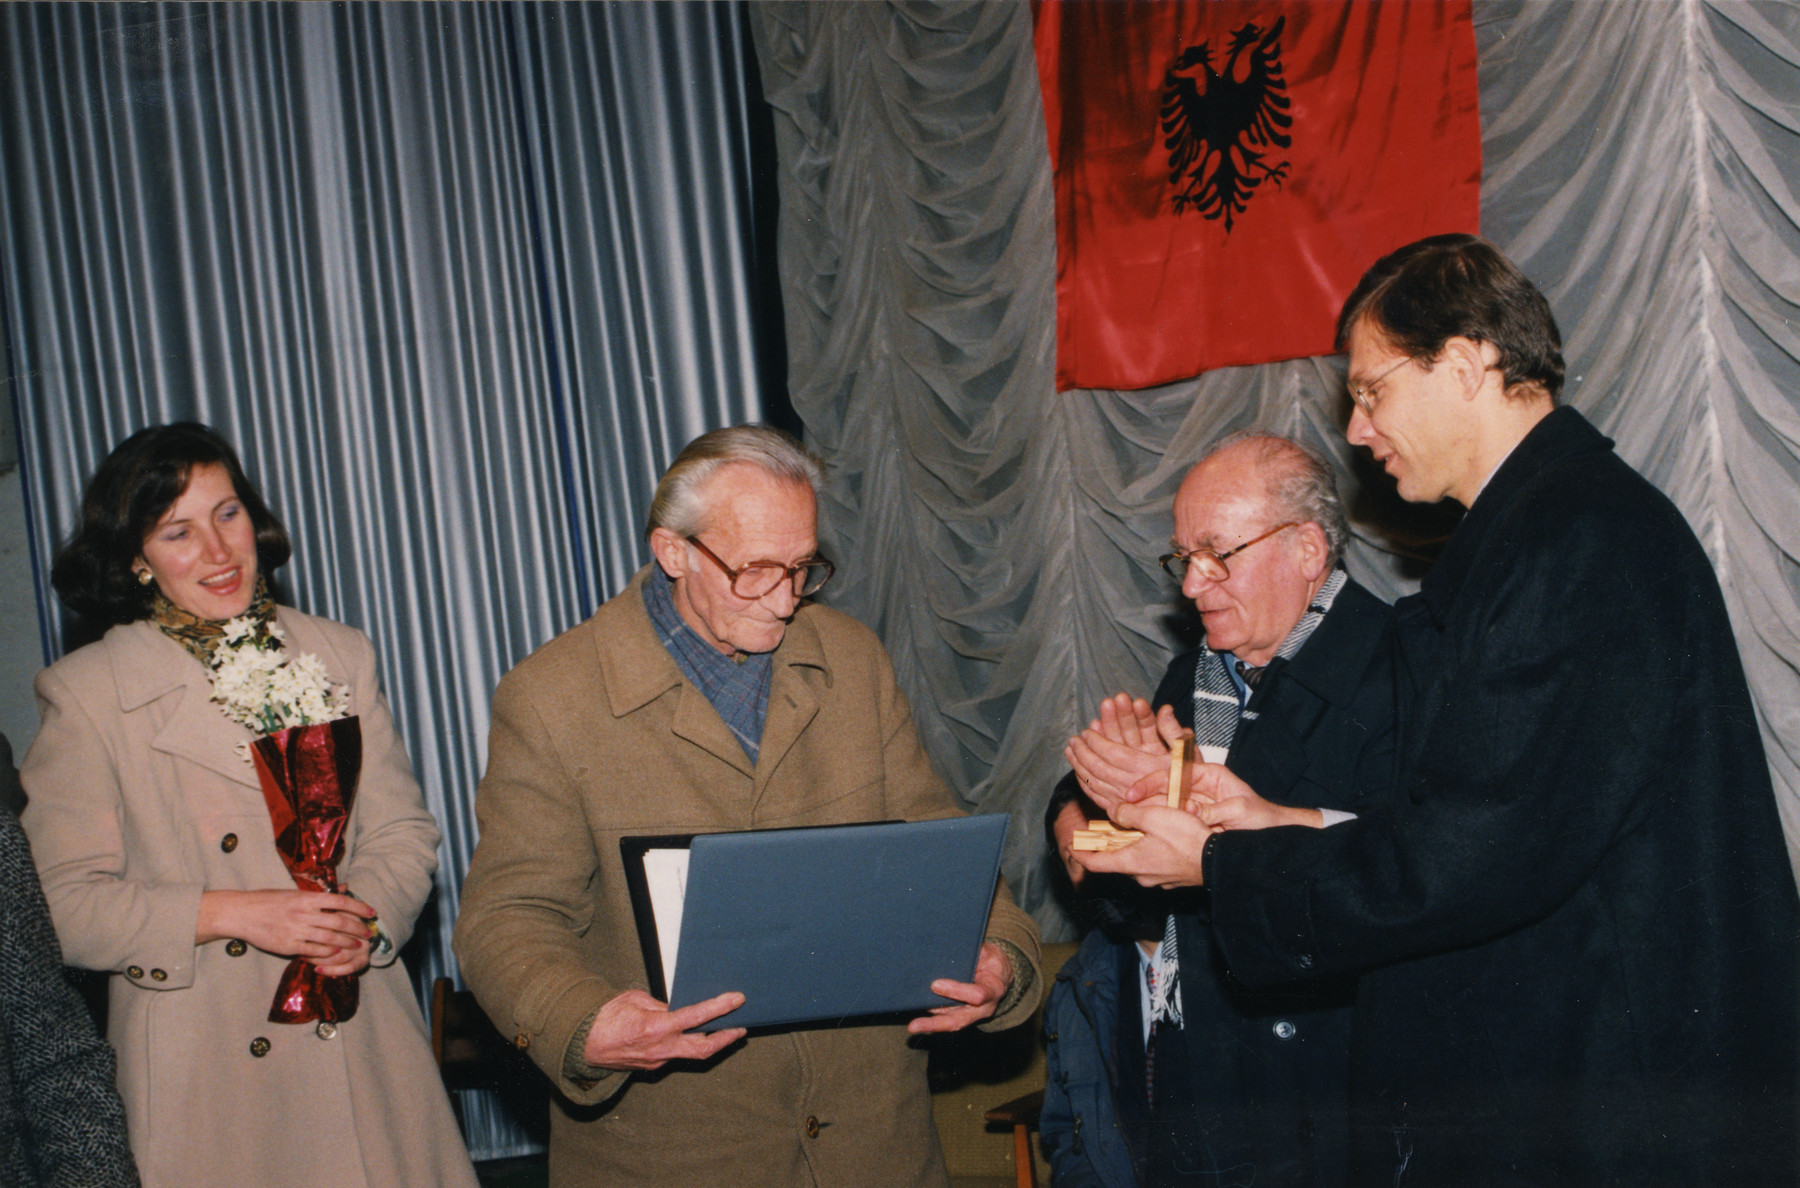 Edip Pilku accepts the Righteous Among the Nations award on behalf of his parents, rescuers, Njazi and Lisa Lotte Pilku.  Also pictured is another Albanian rescuer, Refik Veseli (second from the right) and the Israeli Ambassador, Tibor Schlosser (far right).  The daughter of Edip Pilku is standing on the far left.